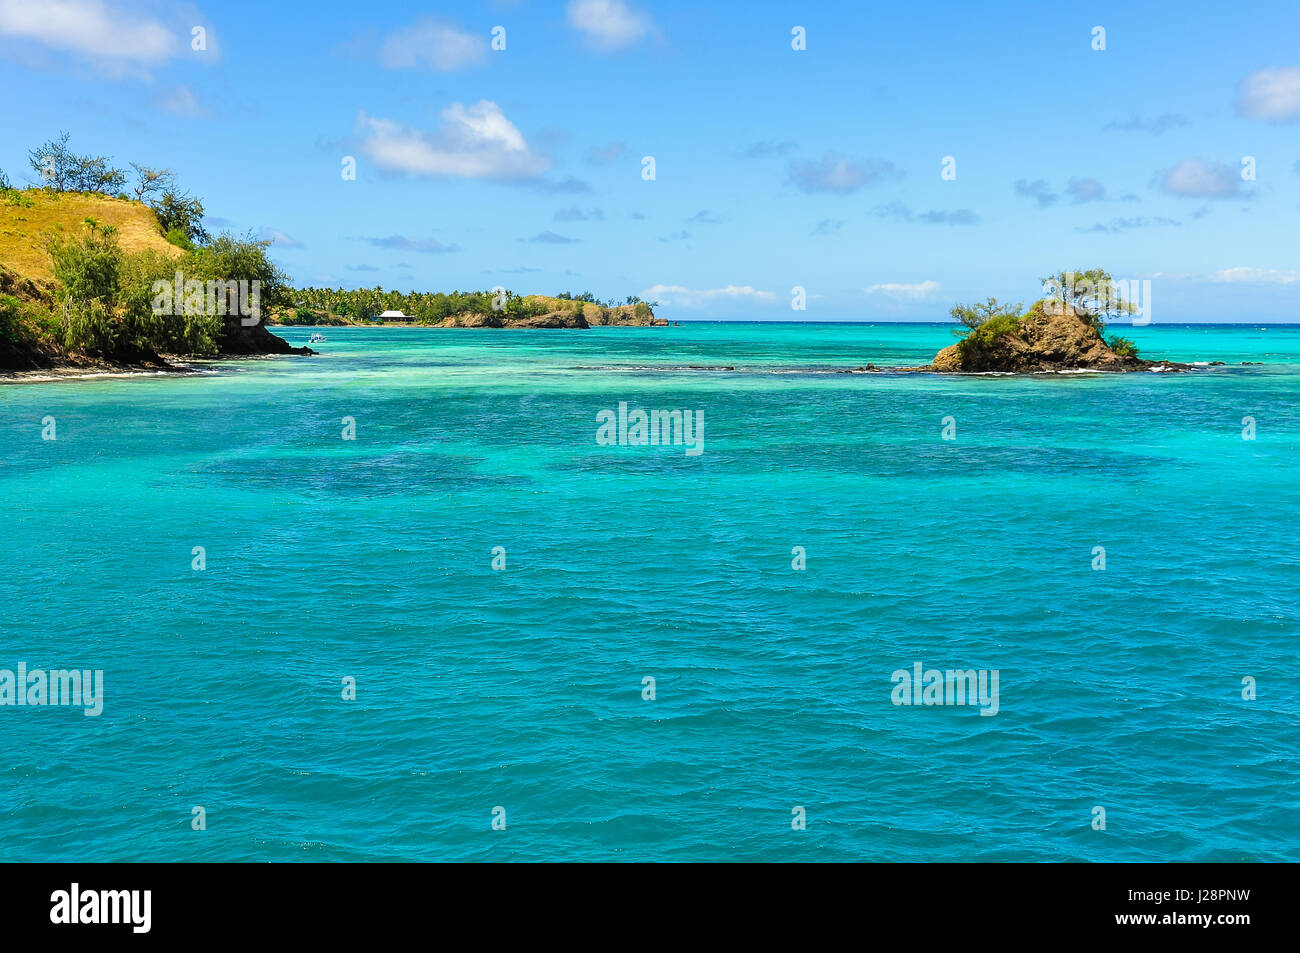 Small island near Nacula Island, part of the Yasawa Island group in Fiji - Stock Image